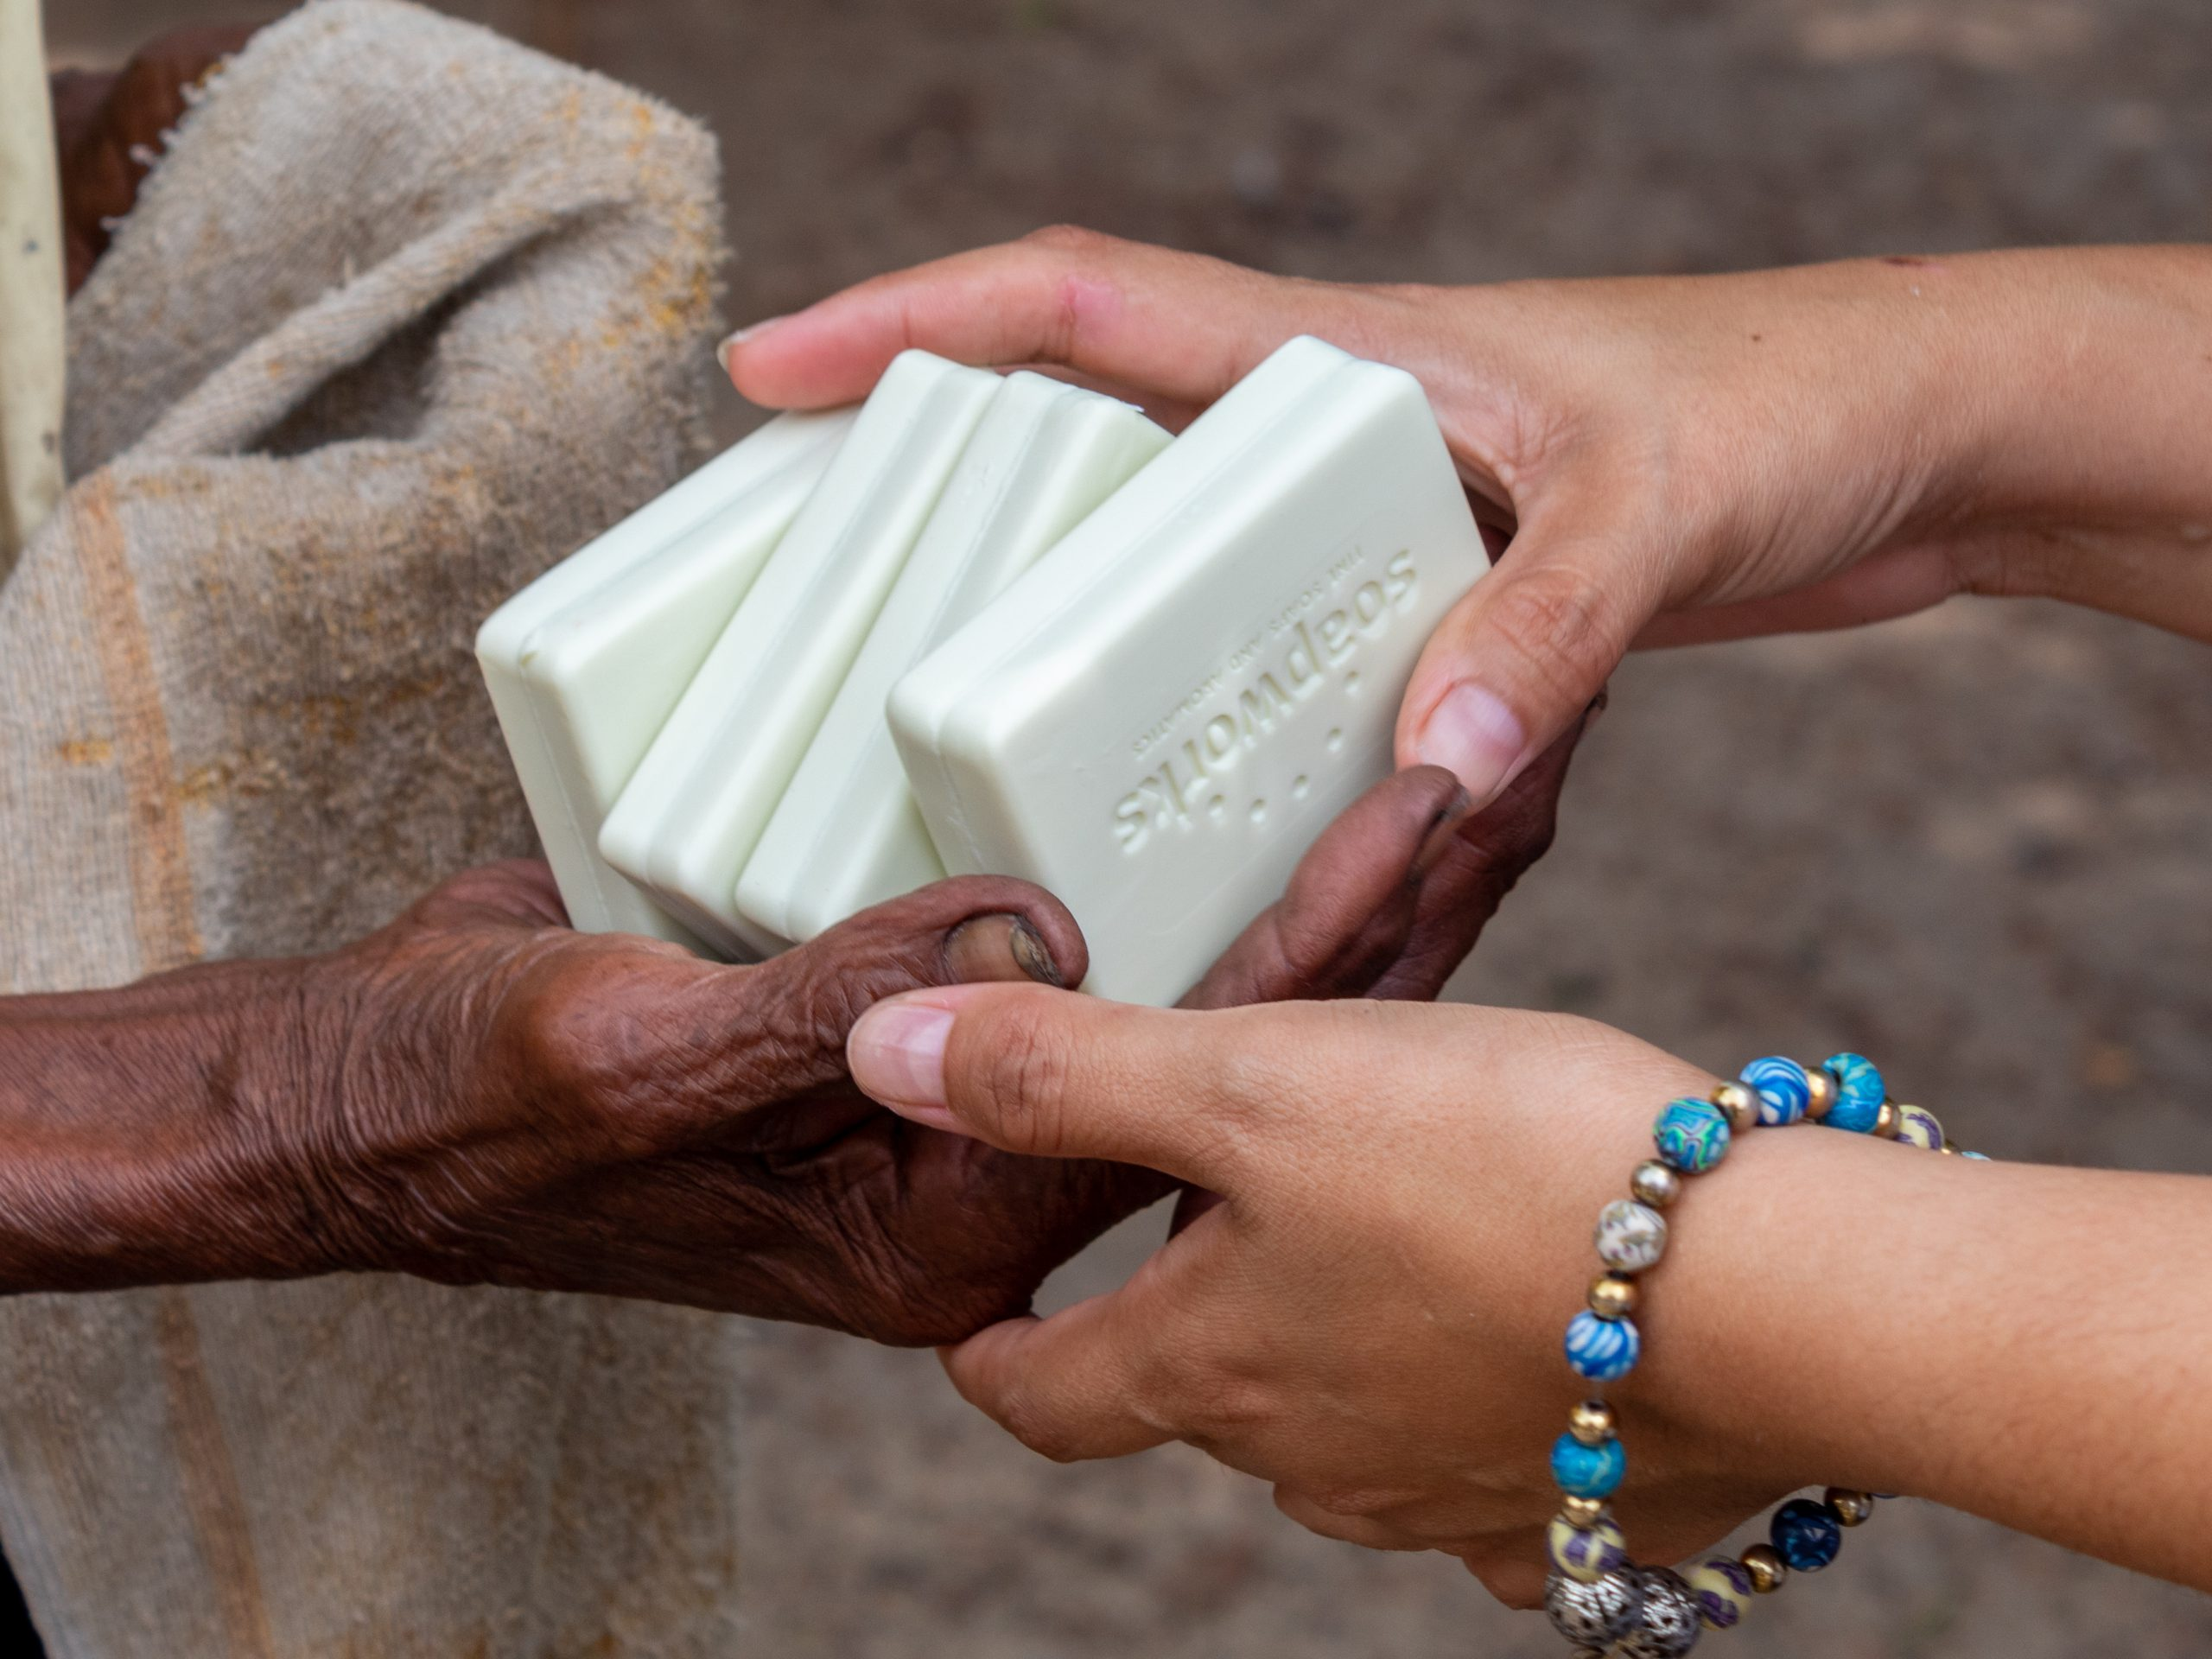 sustainable palm oil-based soap